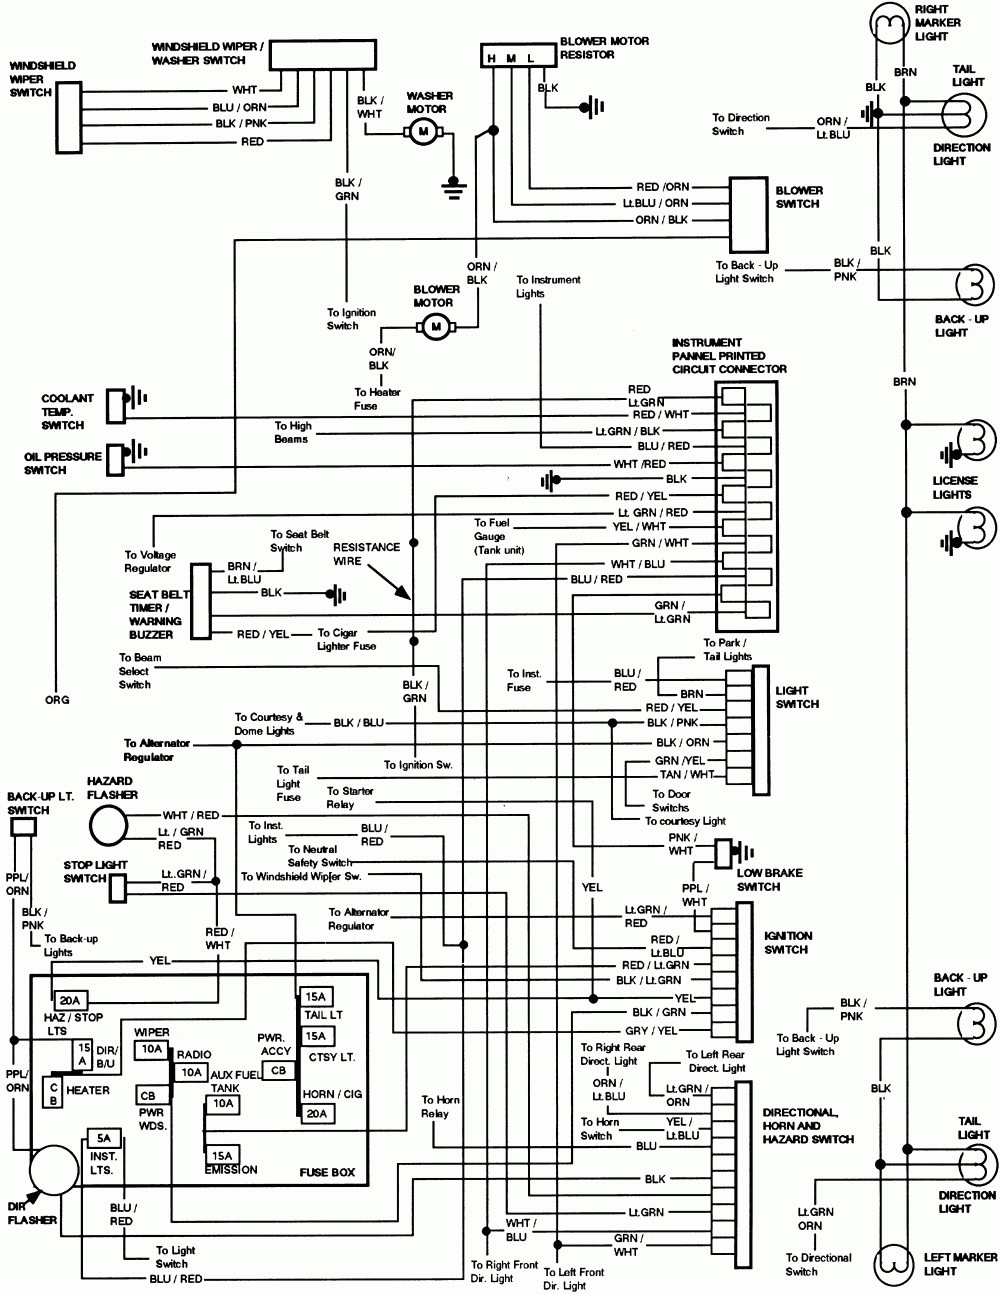 302 Wiring Diagram | Wiring Diagram on